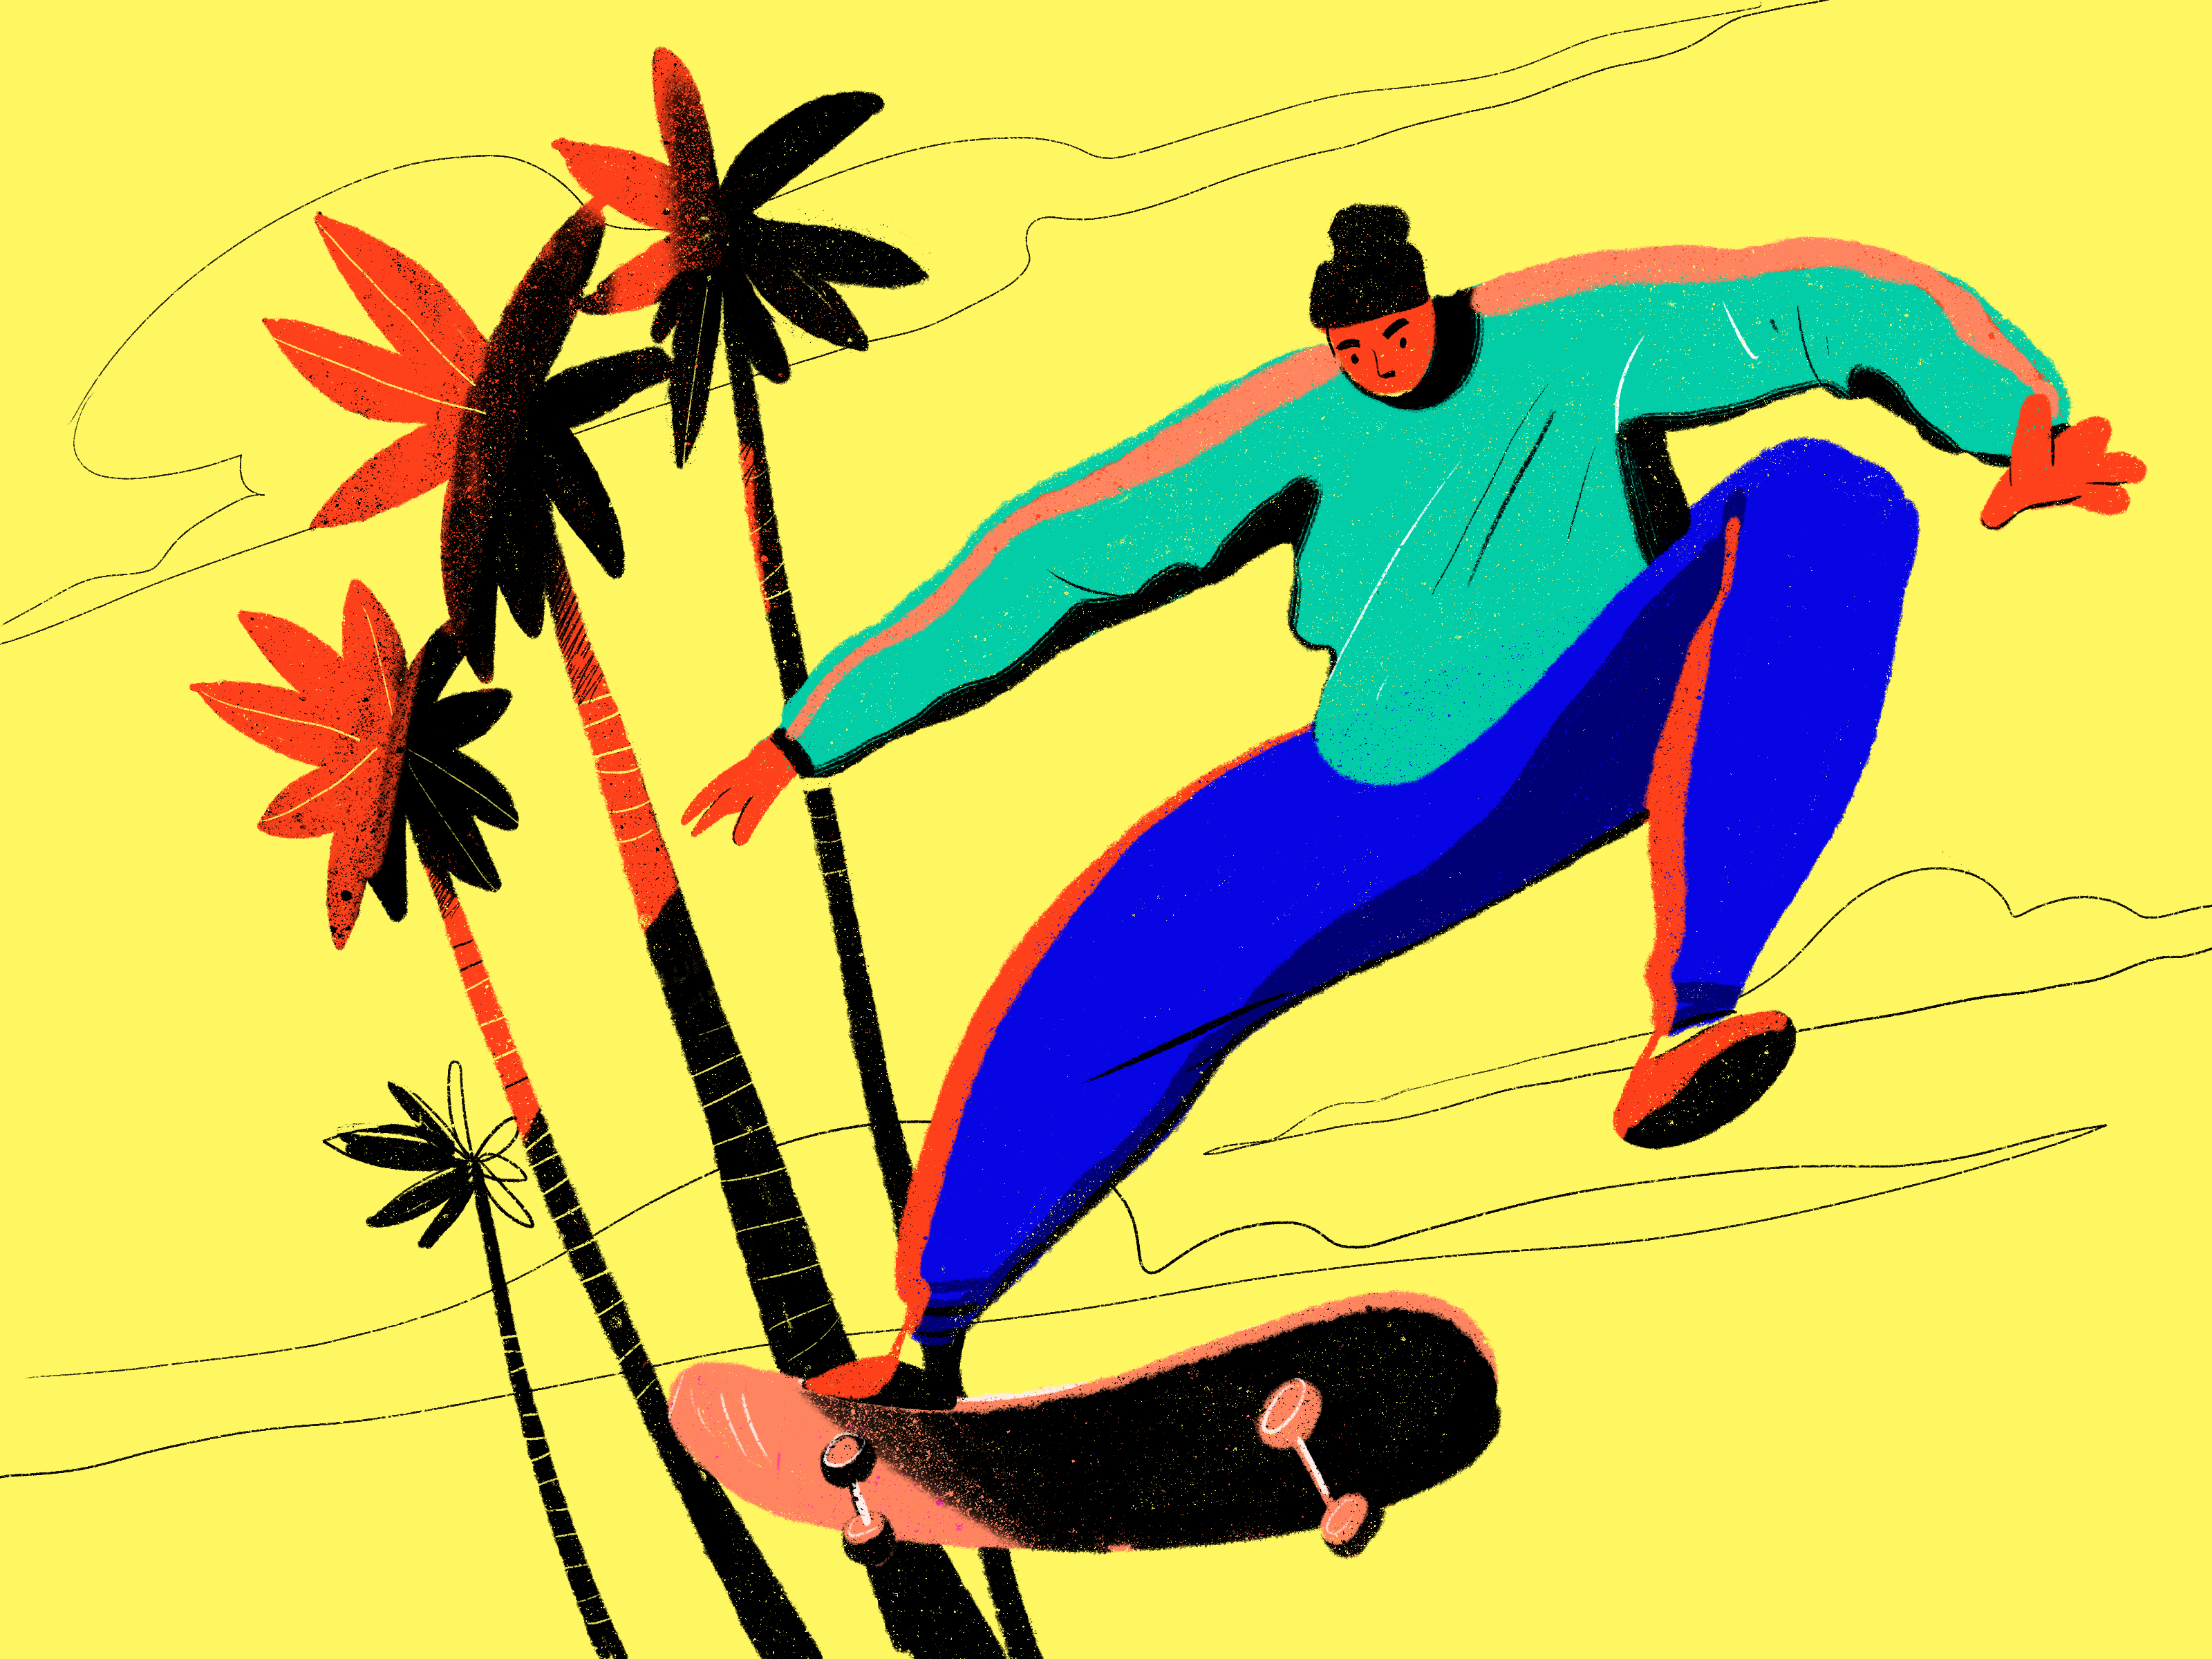 bright skateboarder illustration